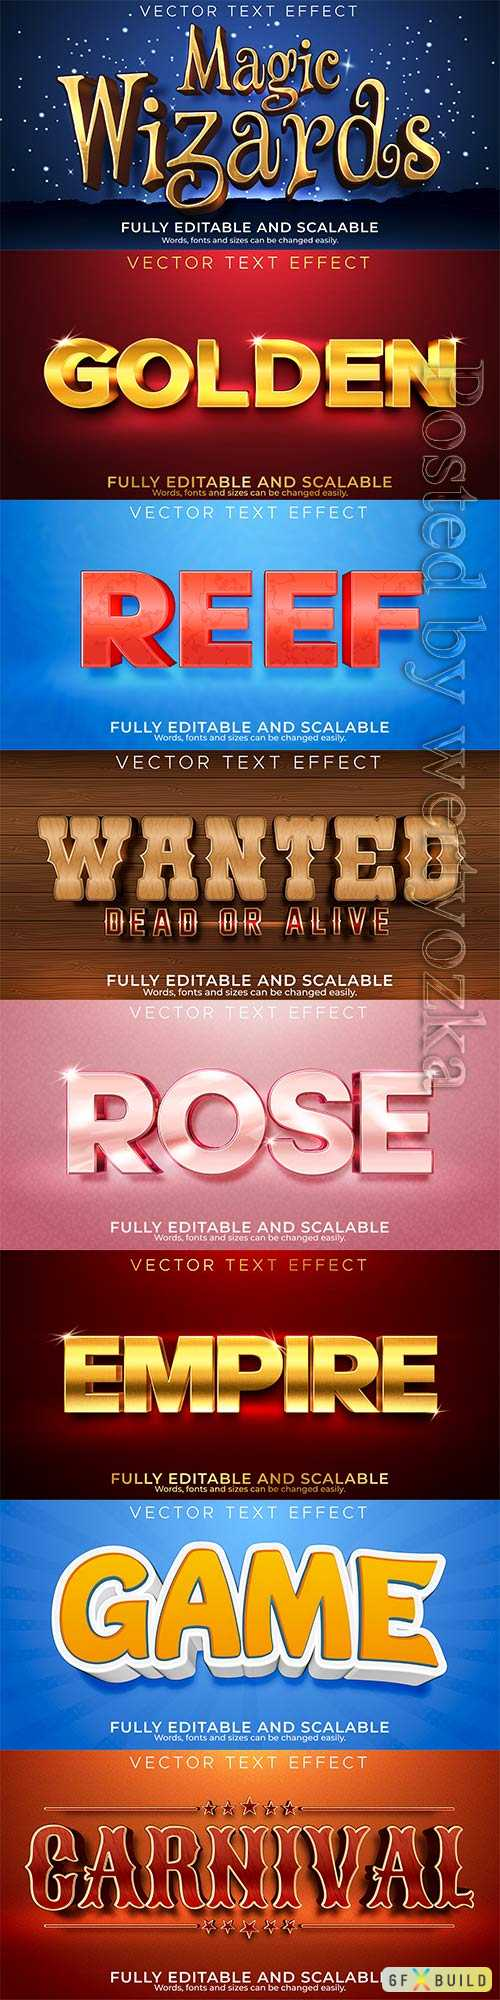 3d editable text style effect vector vol 340